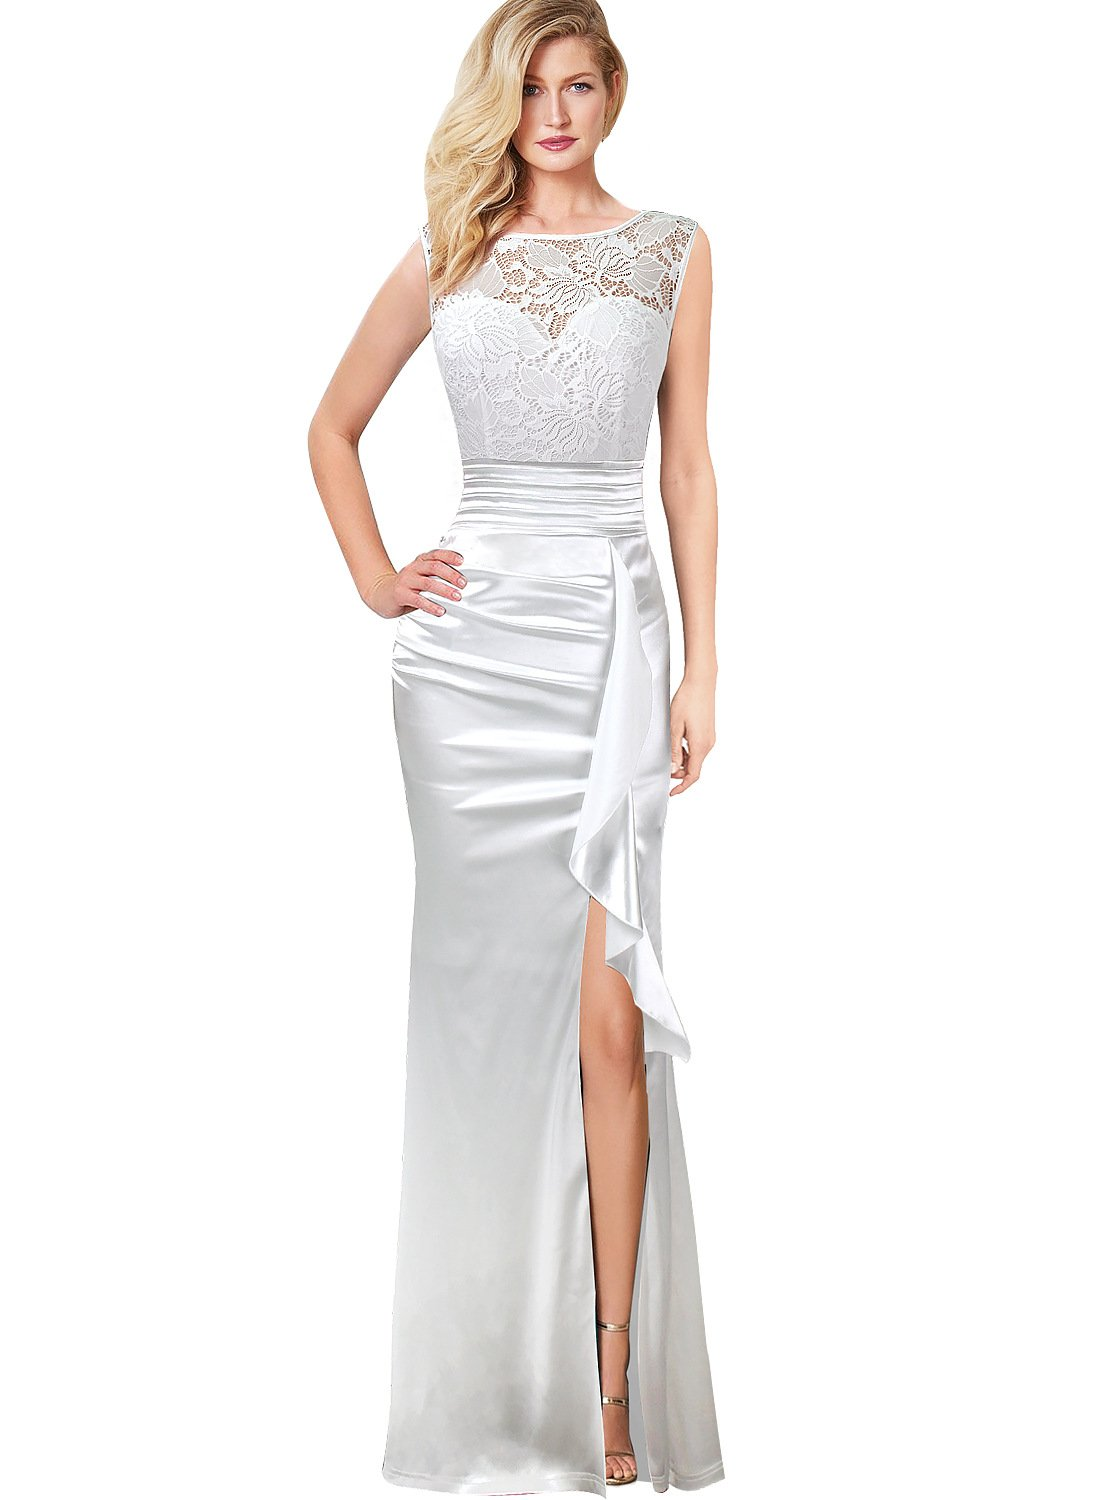 VFSHOW Women Floral Lace Ruched Ruffle Slit Prom Evening Wedding Maxi Dress 662 WHT S by VFSHOW